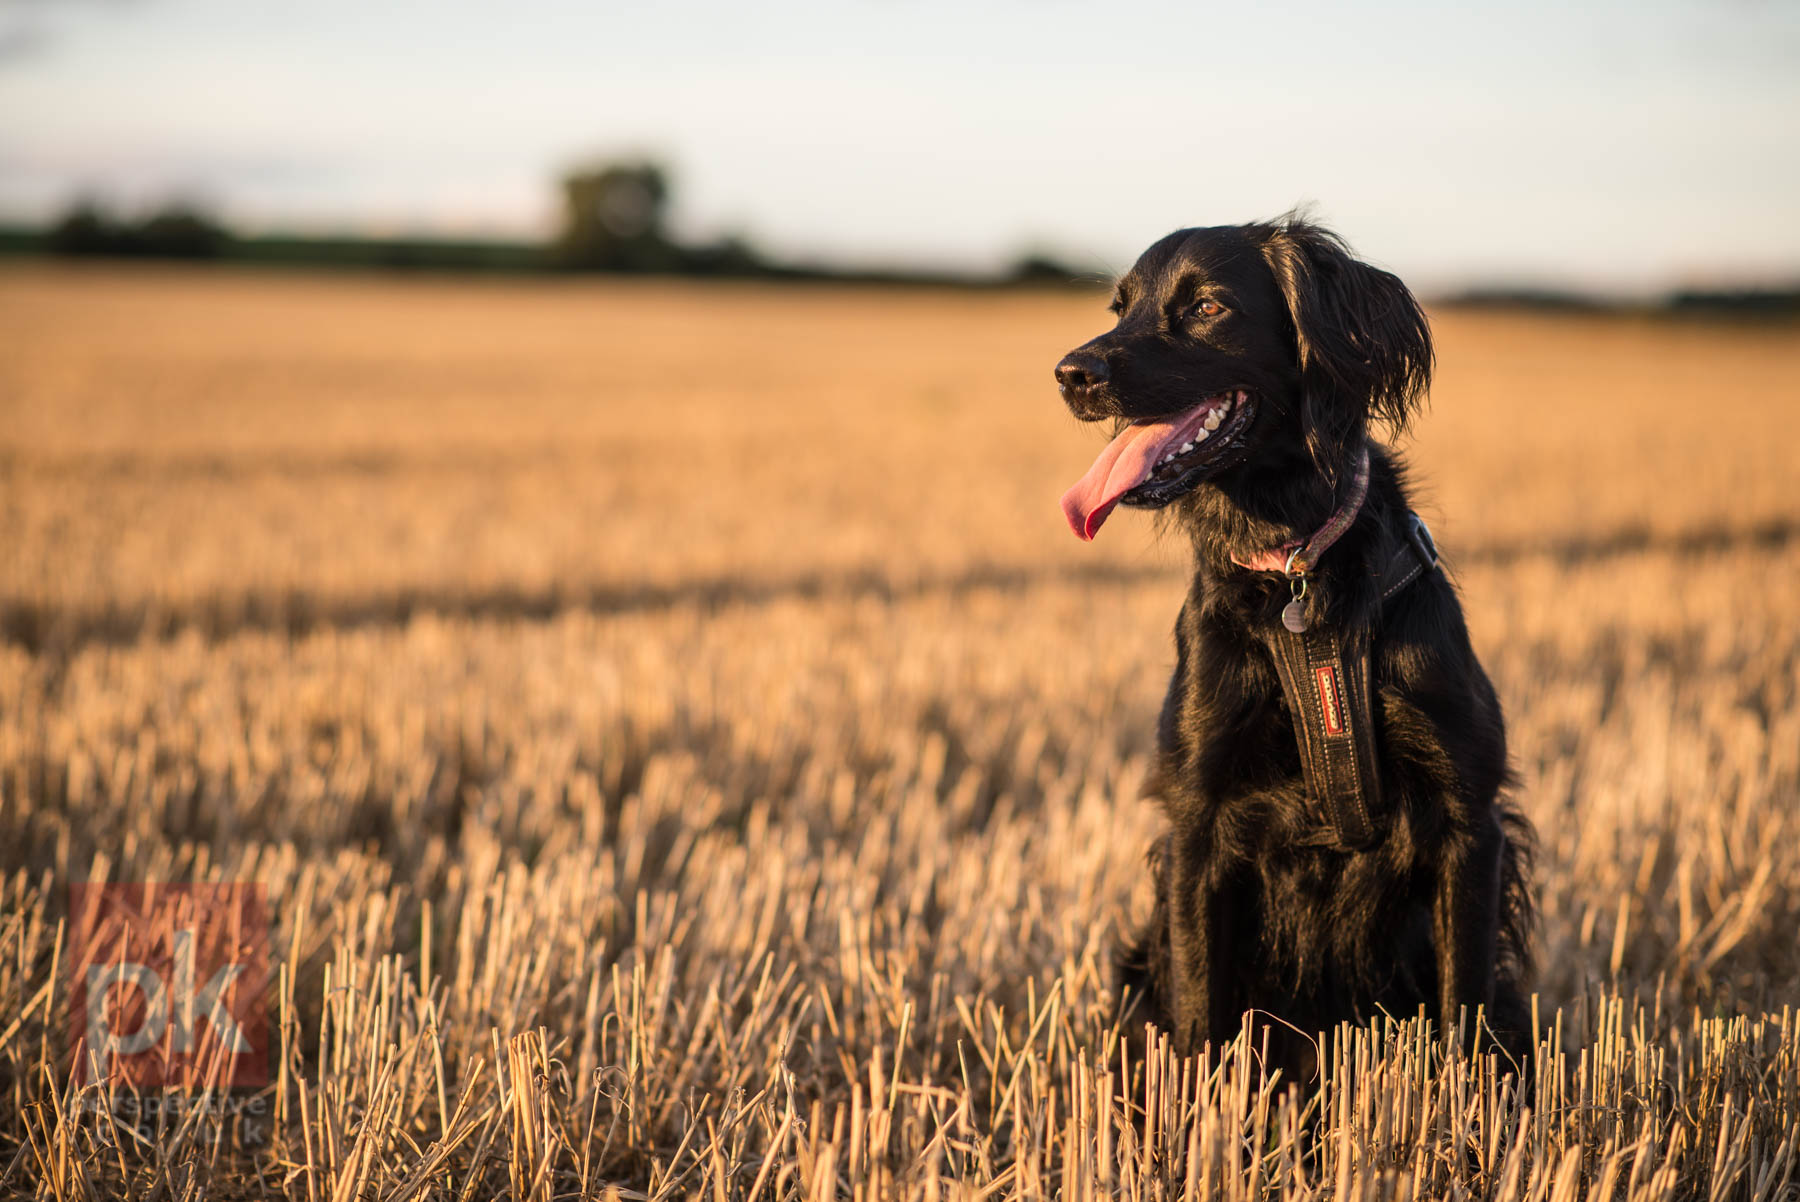 Testing the 85mm F1.8 lens in the local Luncarty fields - never work with children or animals ;)